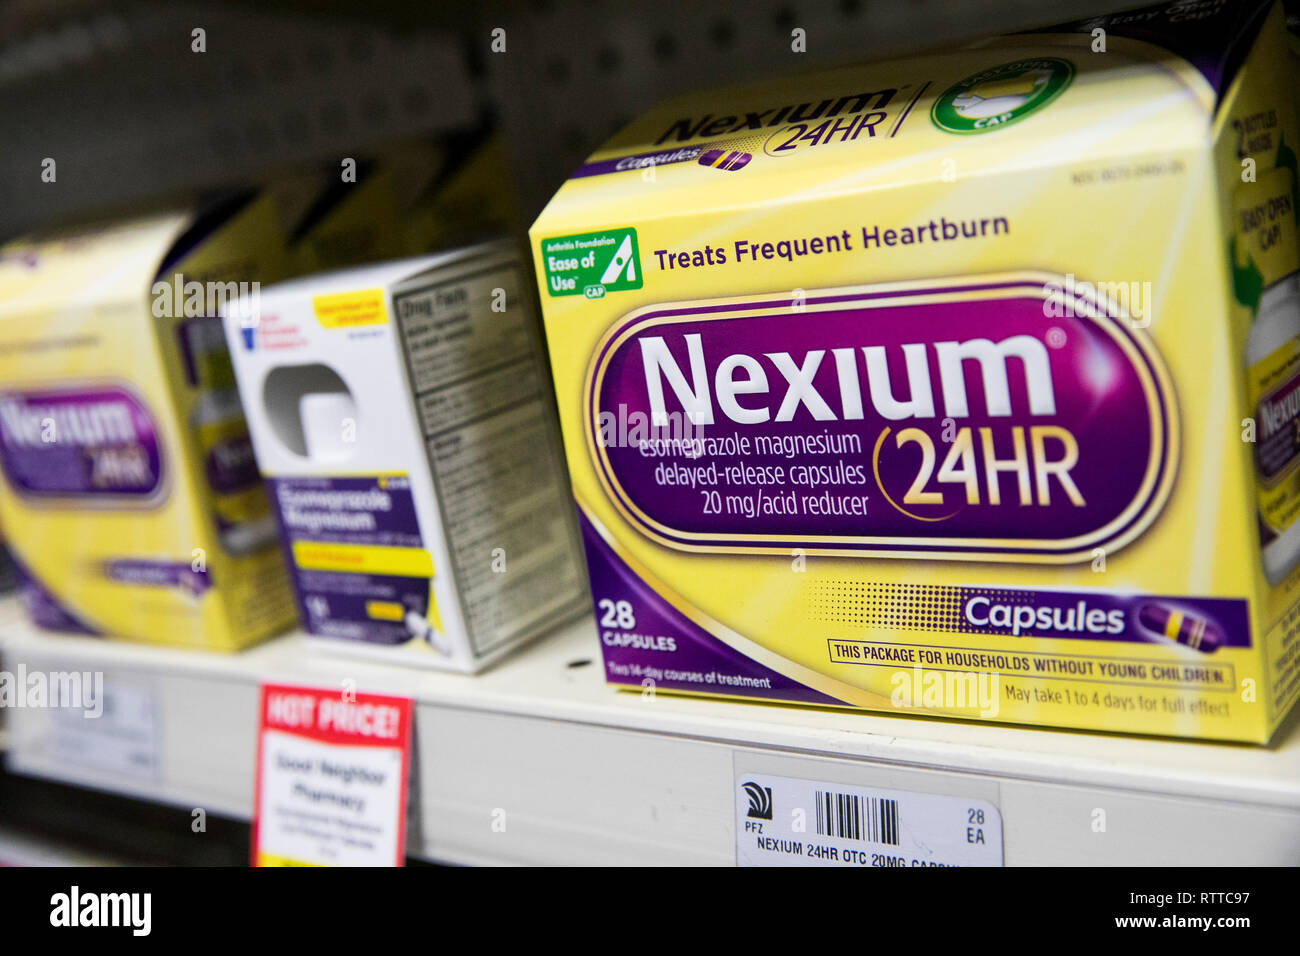 Nexium antacid over-the-counter medicine photographed in a pharmacy. - Stock Image